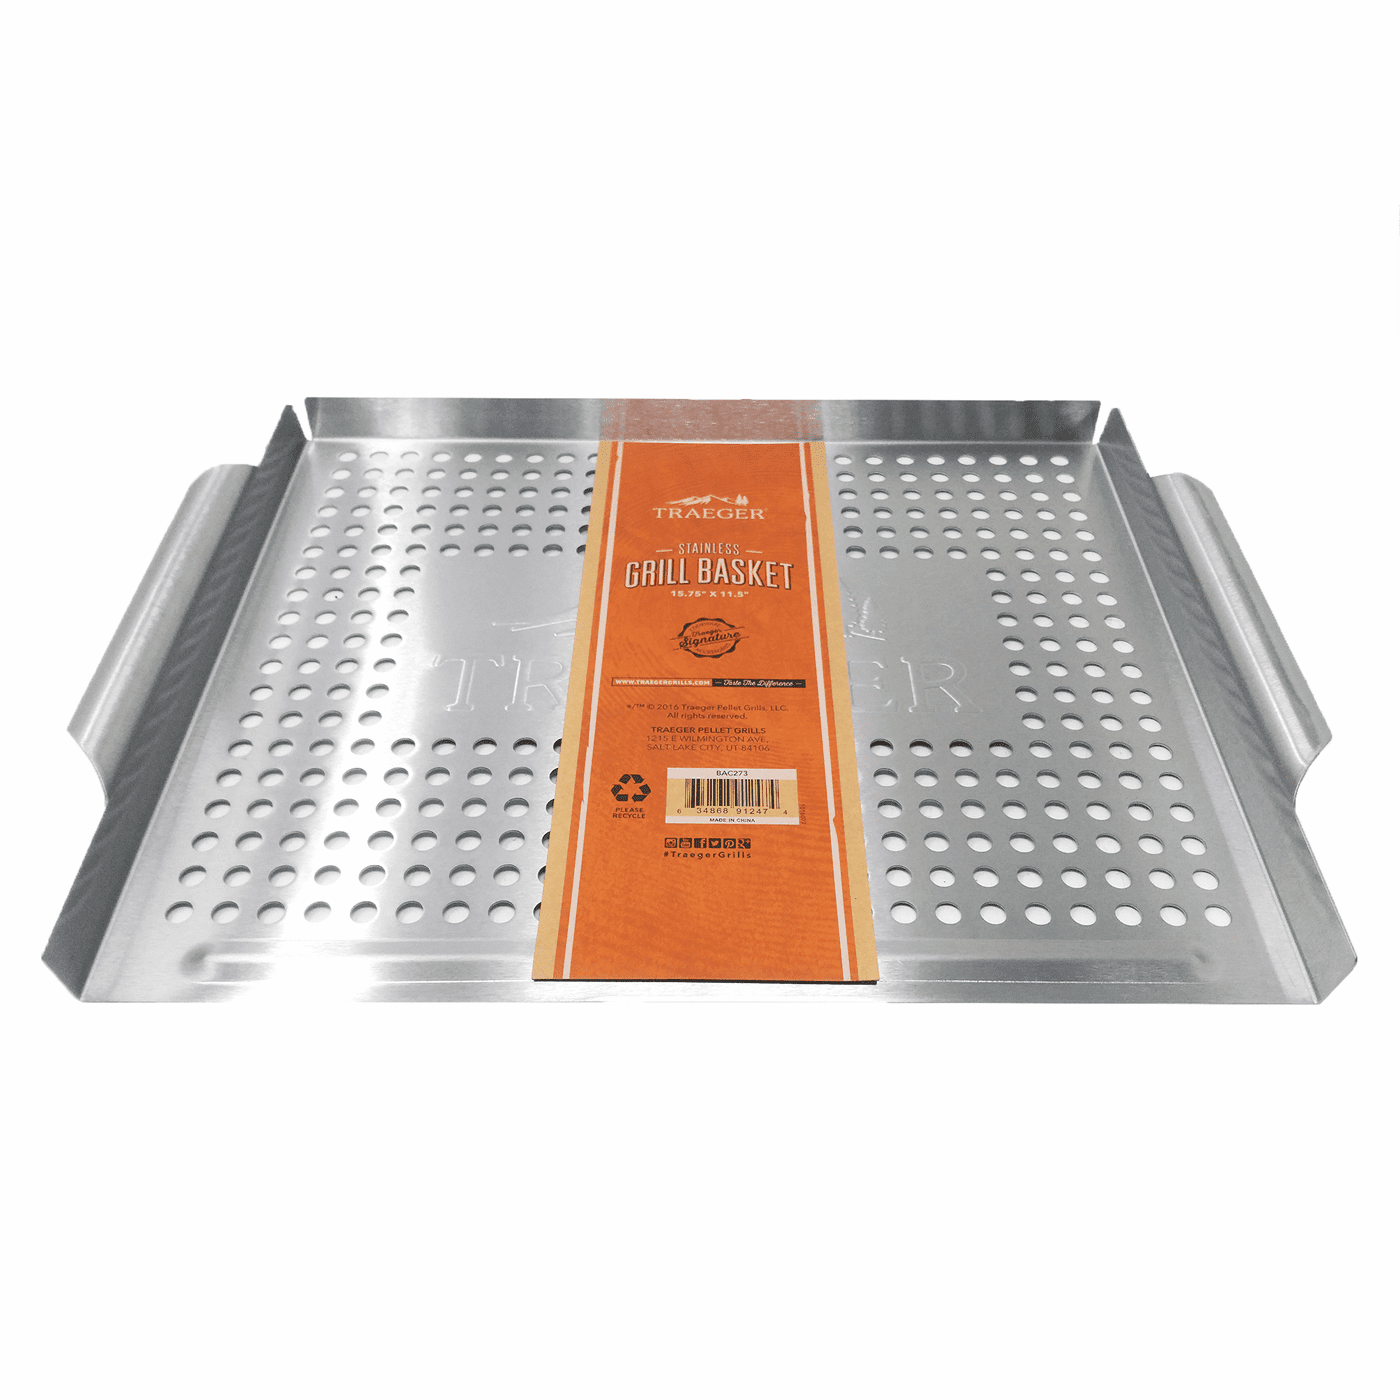 BAC273 | Traeger Stainless Steel Grill Basket, BAC273